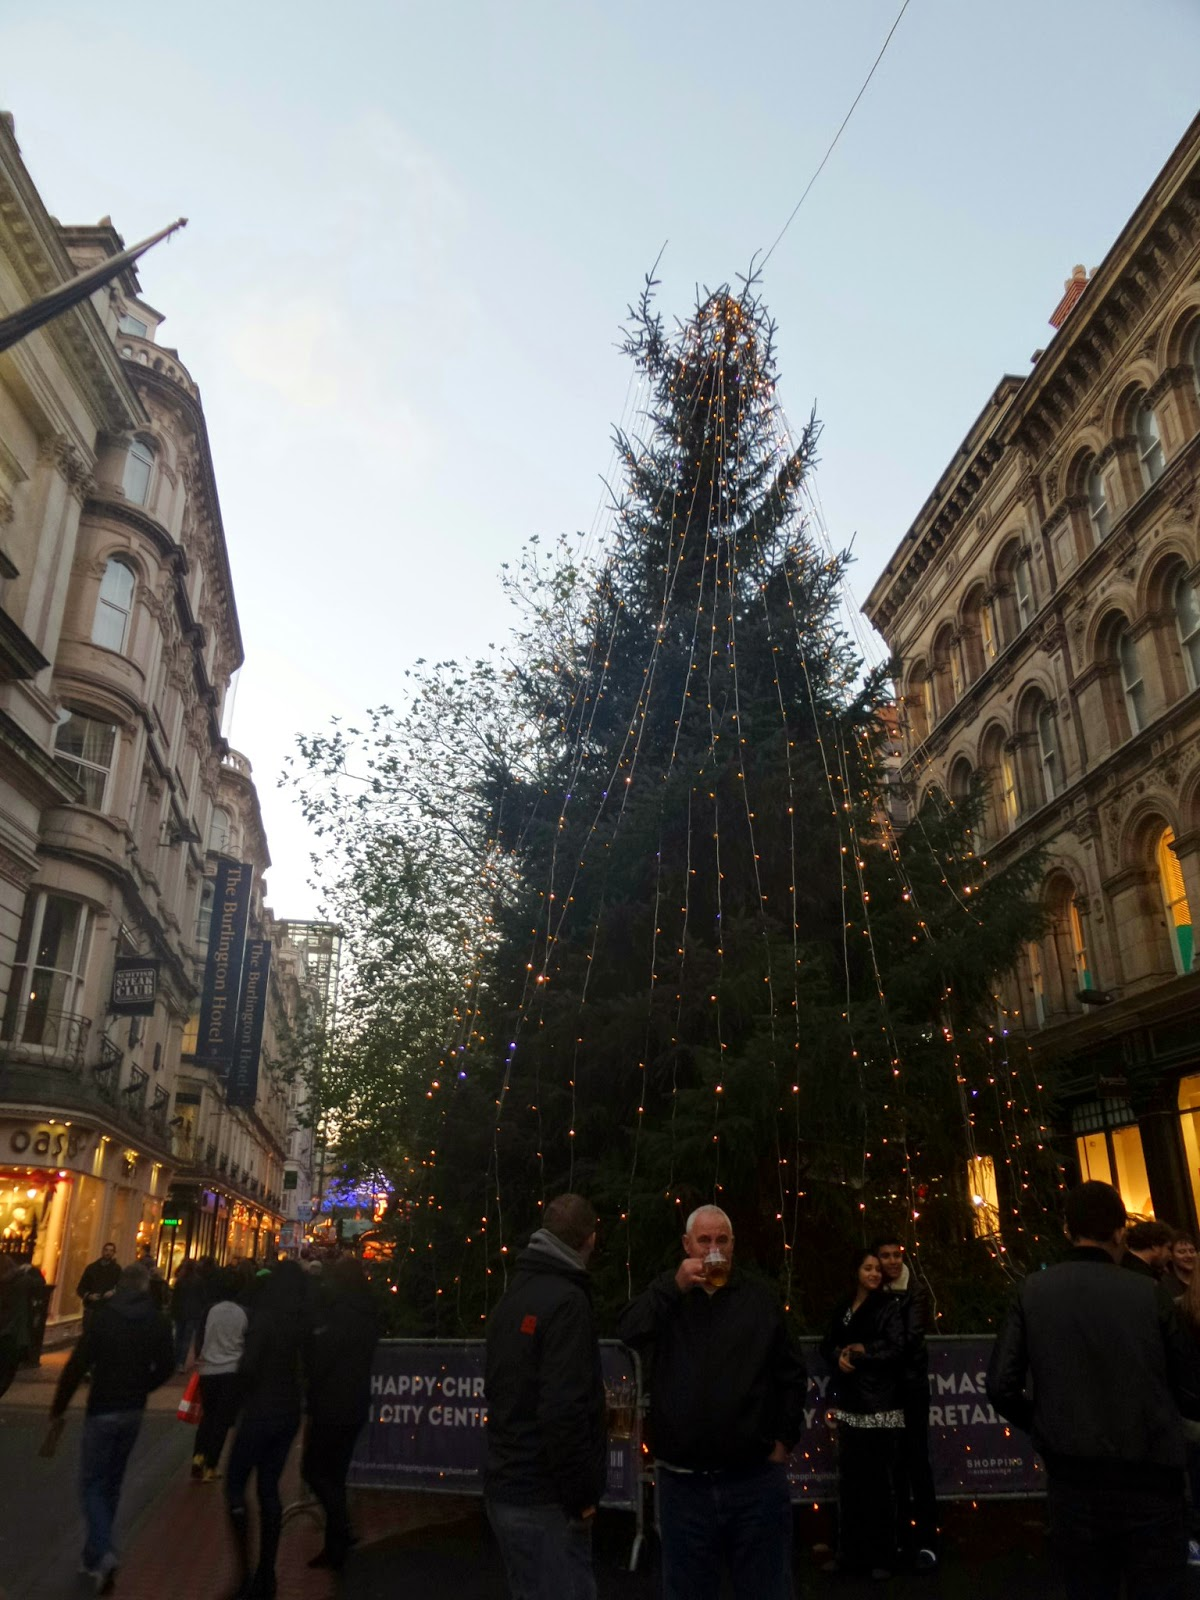 One Christmas Tree in Birmingham City Centre